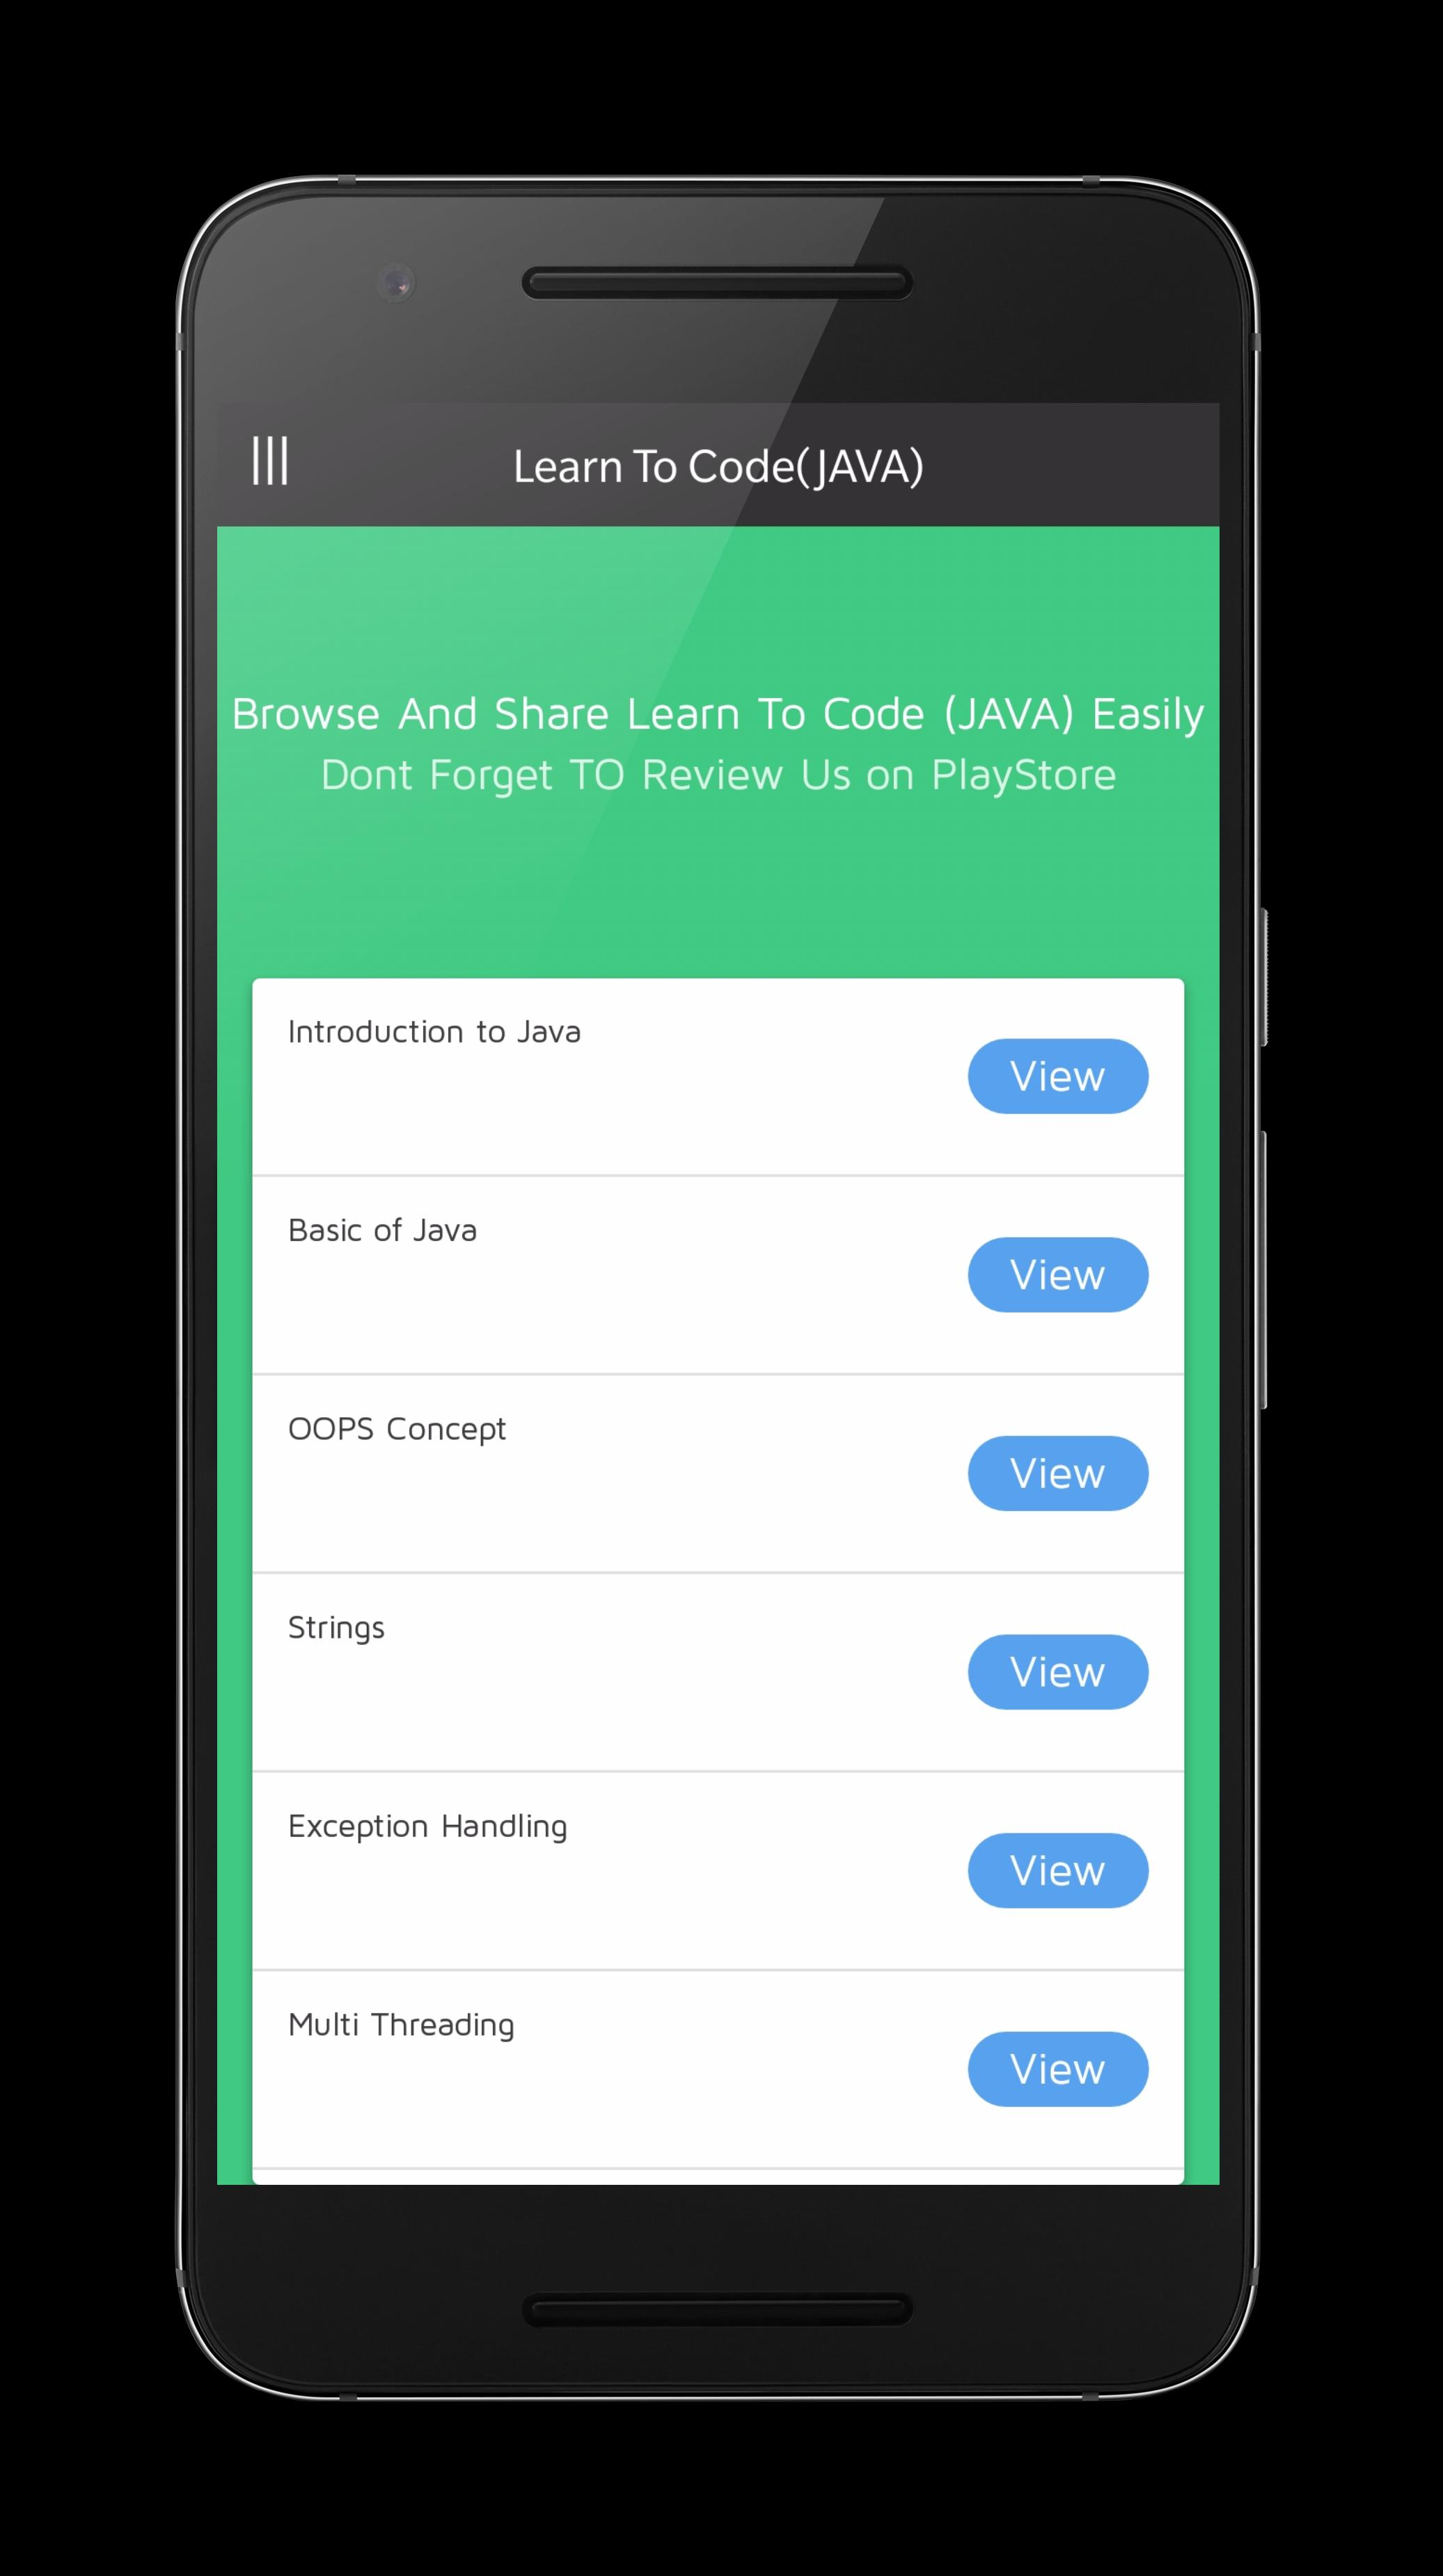 Learn To Code (JAVA) for Android - APK Download